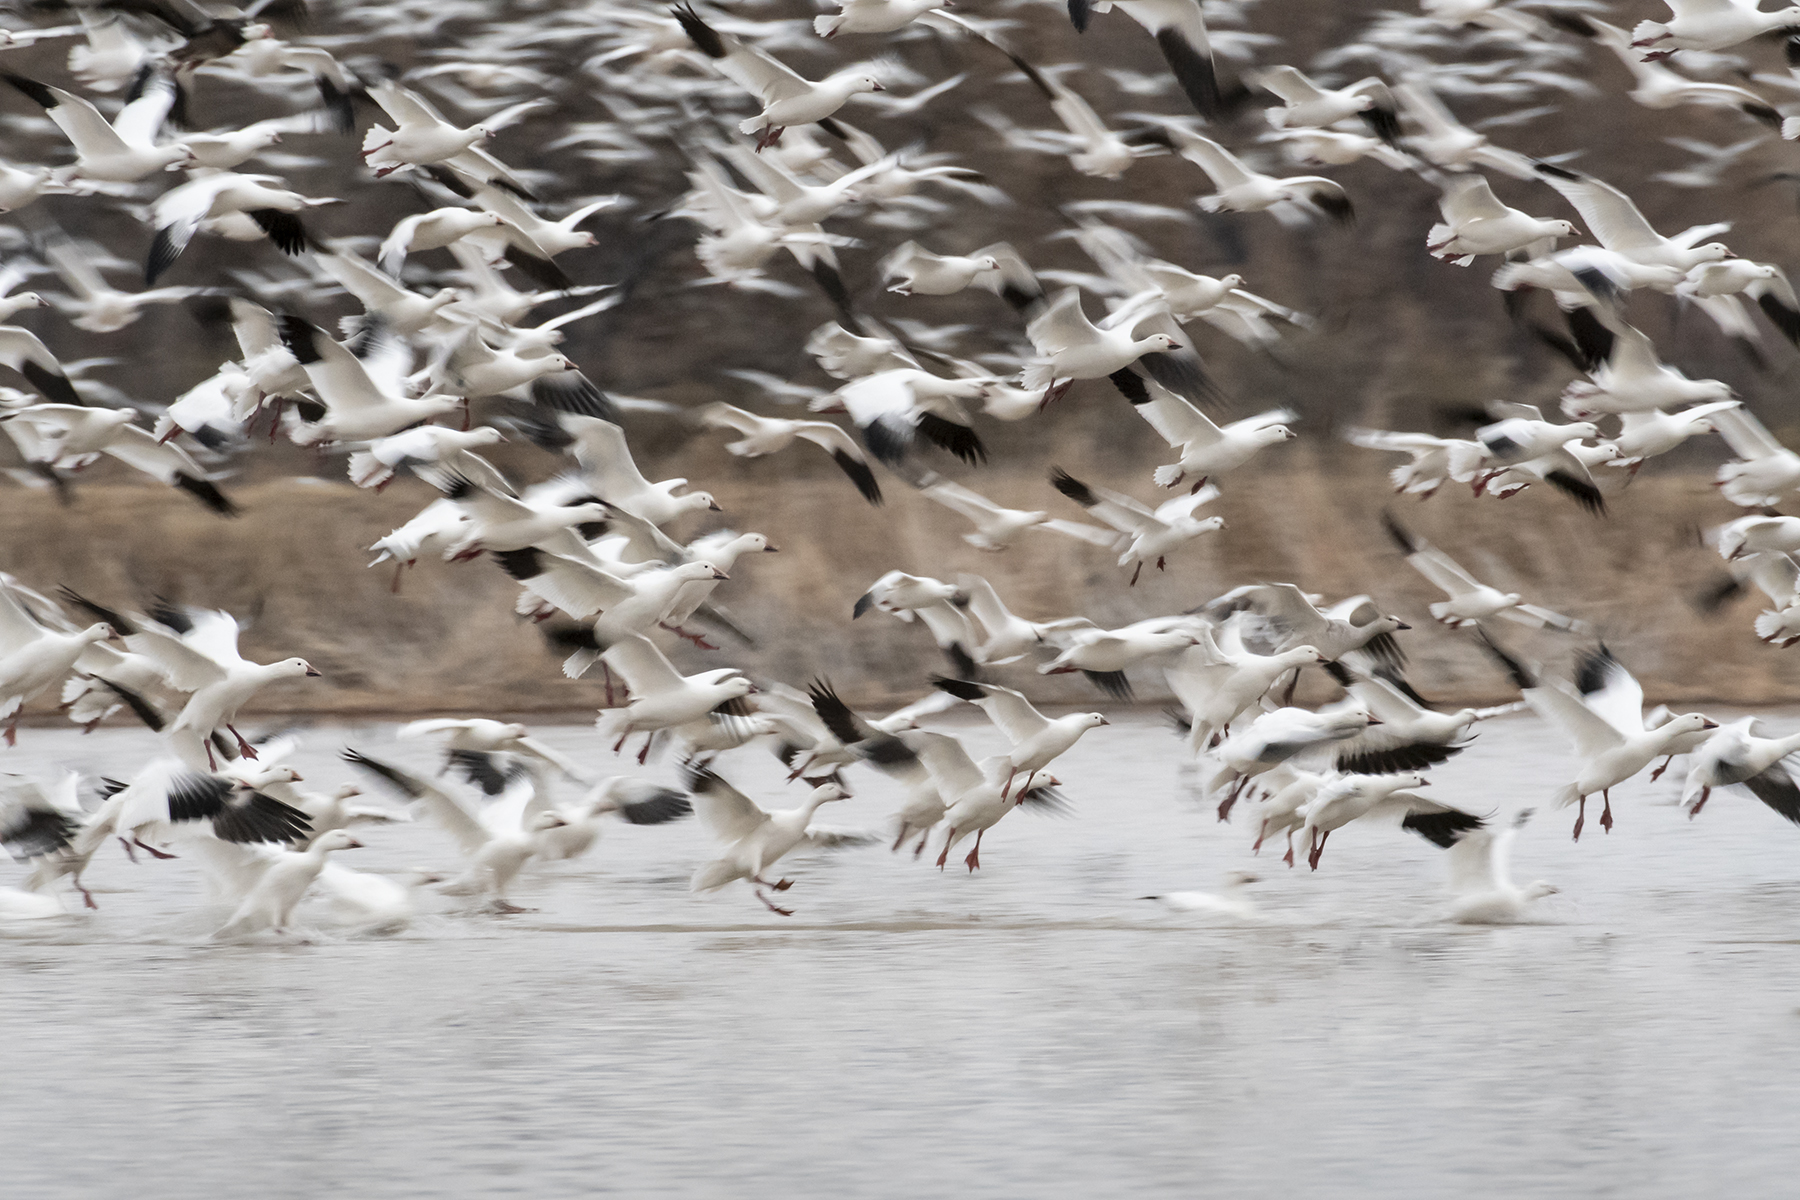 Marlene_Miyamoto_Great North American Migrations_Snow Geese 1_1.jpg